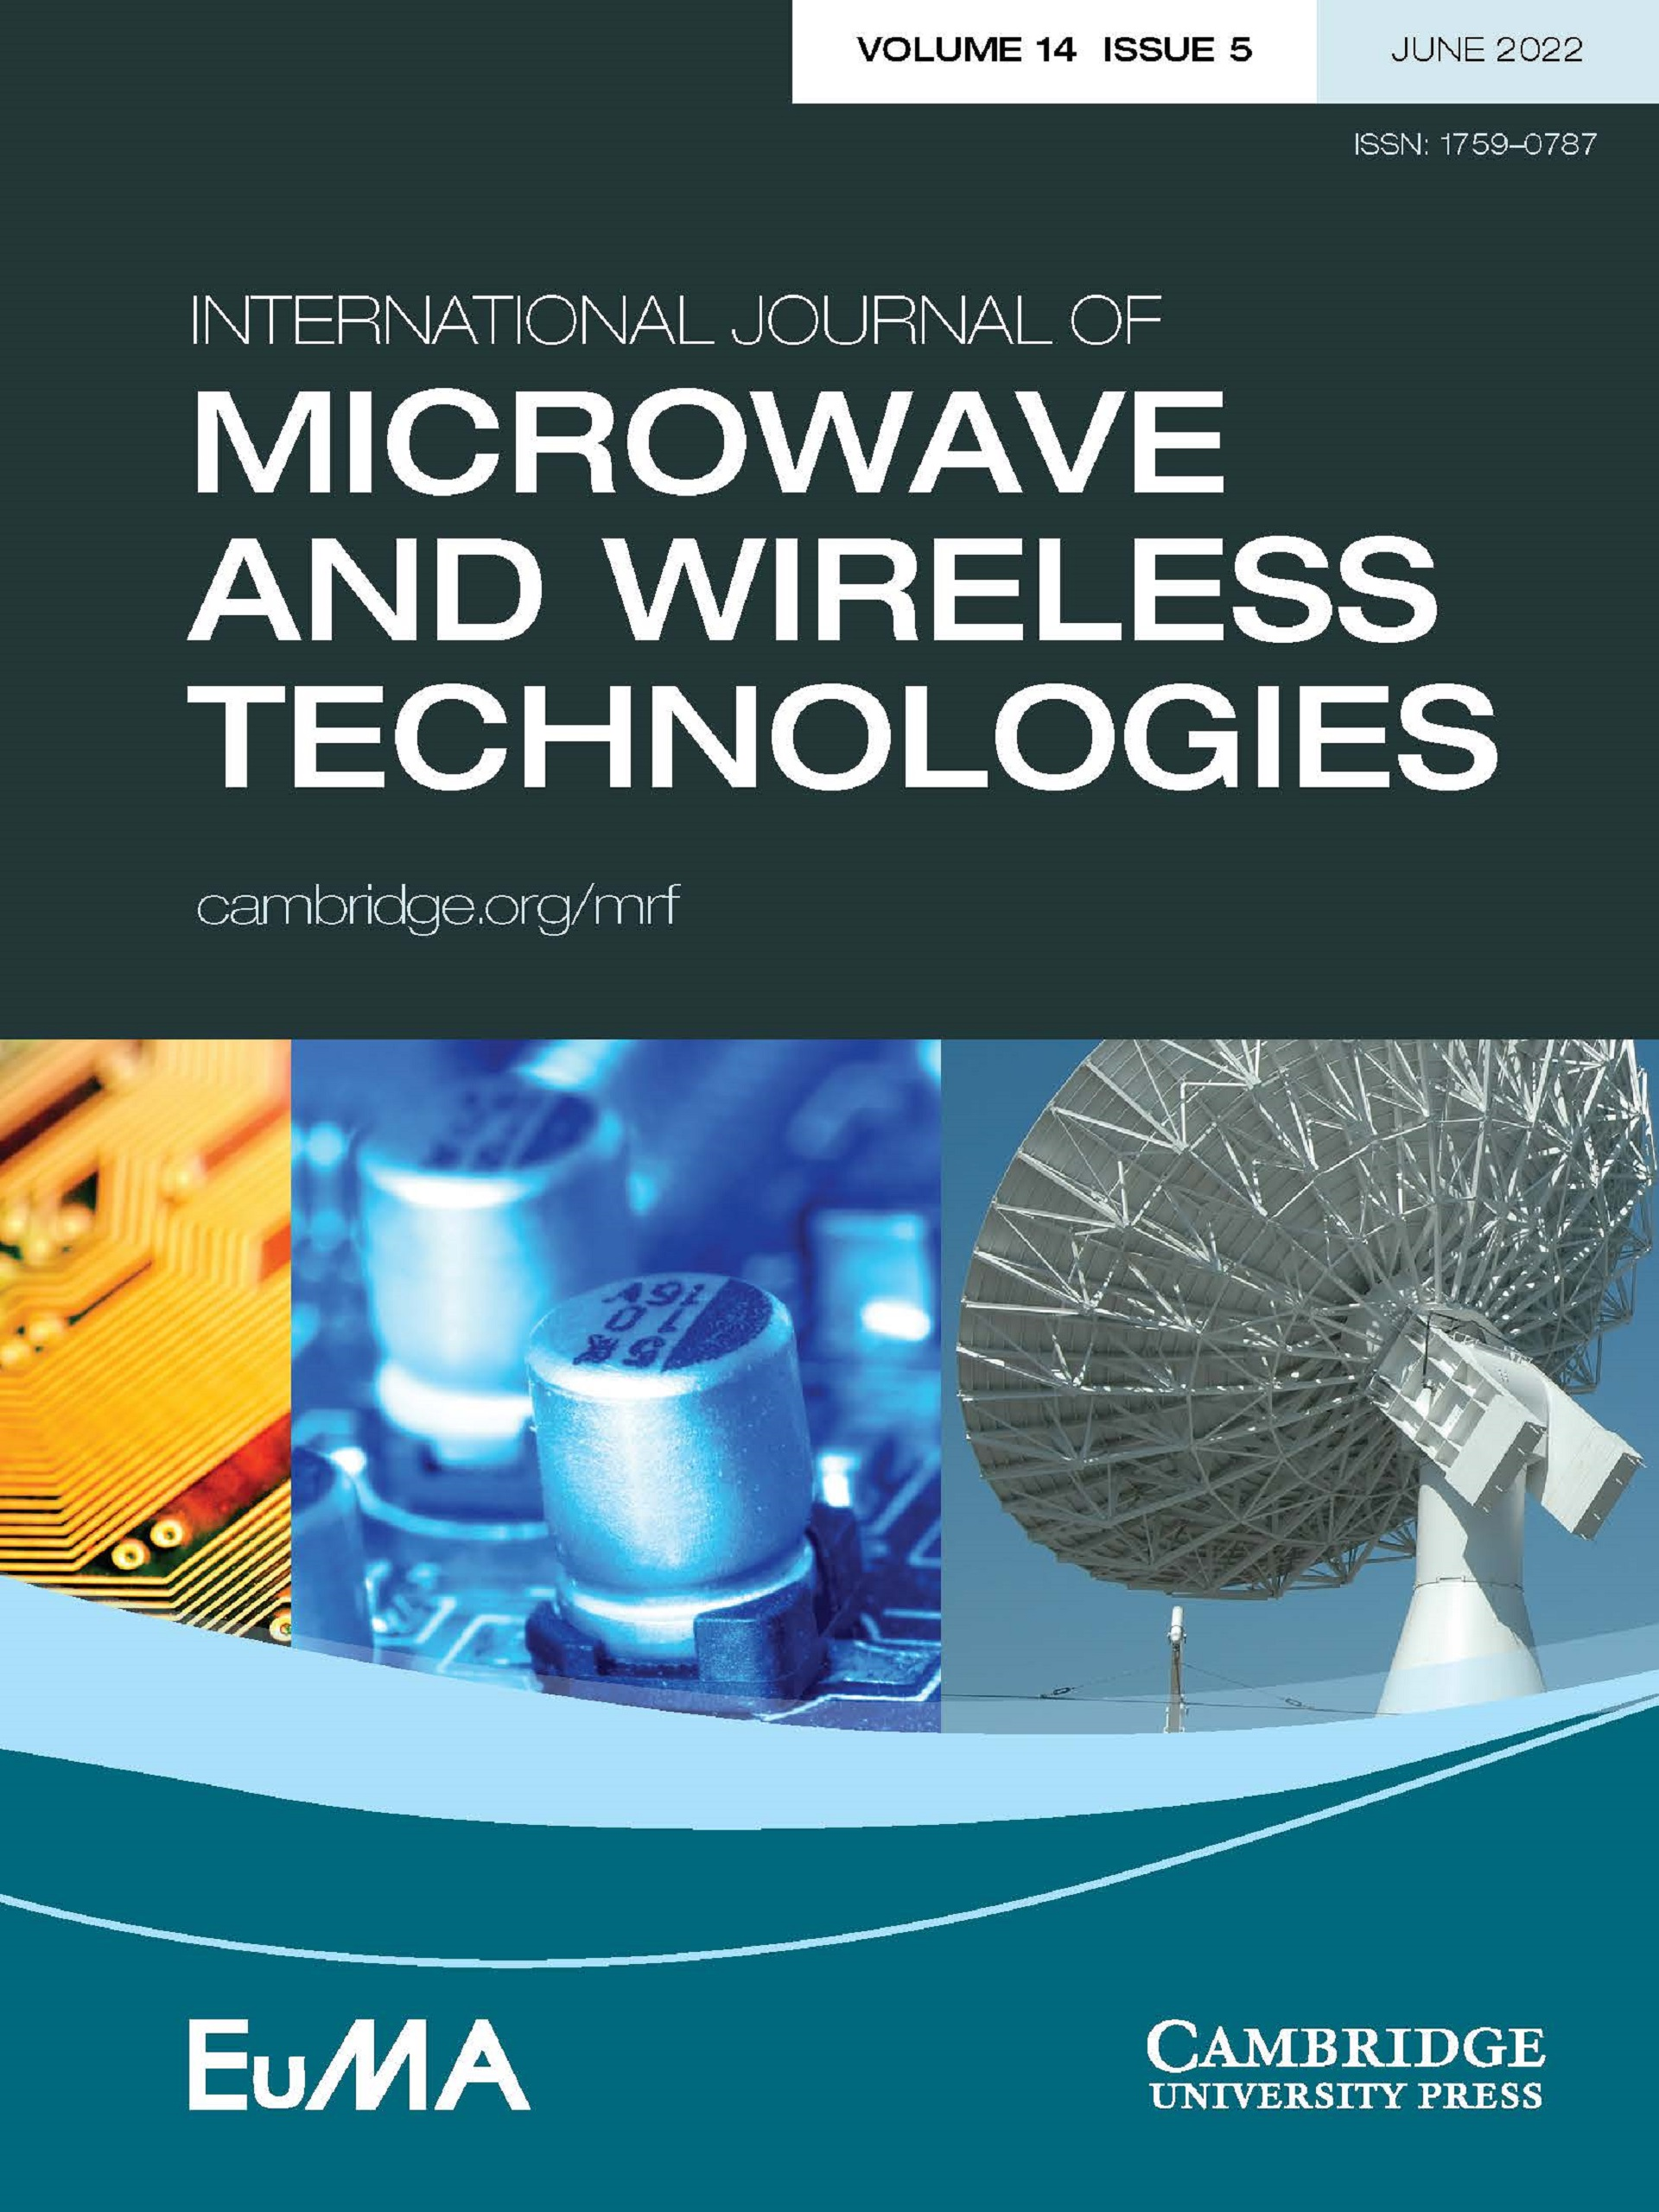 International Journal of Microwave and Wireless Technologies